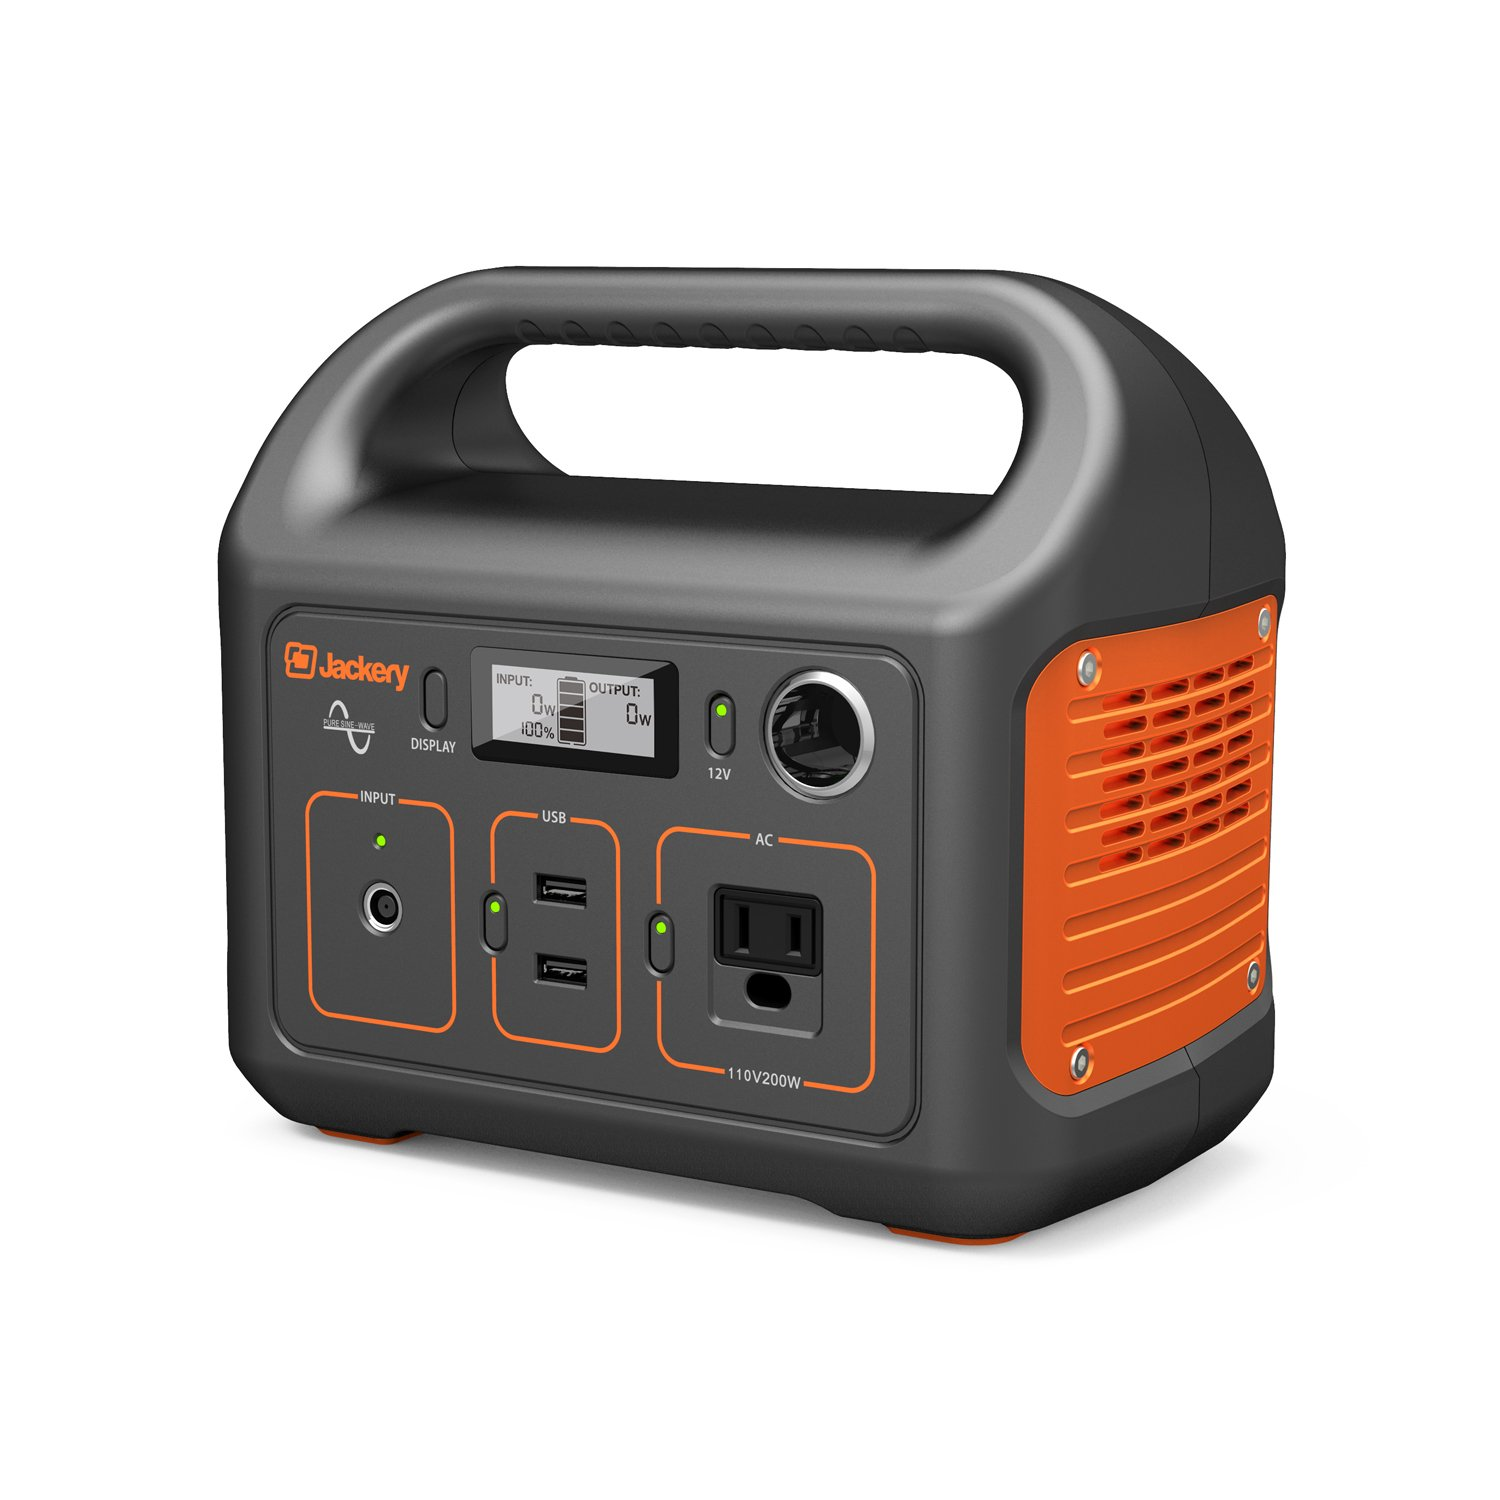 Best Rated In Outdoor Generators Helpful Customer Reviews Wiring A Fish House For Generator Jackery Portable Power Station Explorer 240 240wh Emergency Backup Lithium Battery 110v